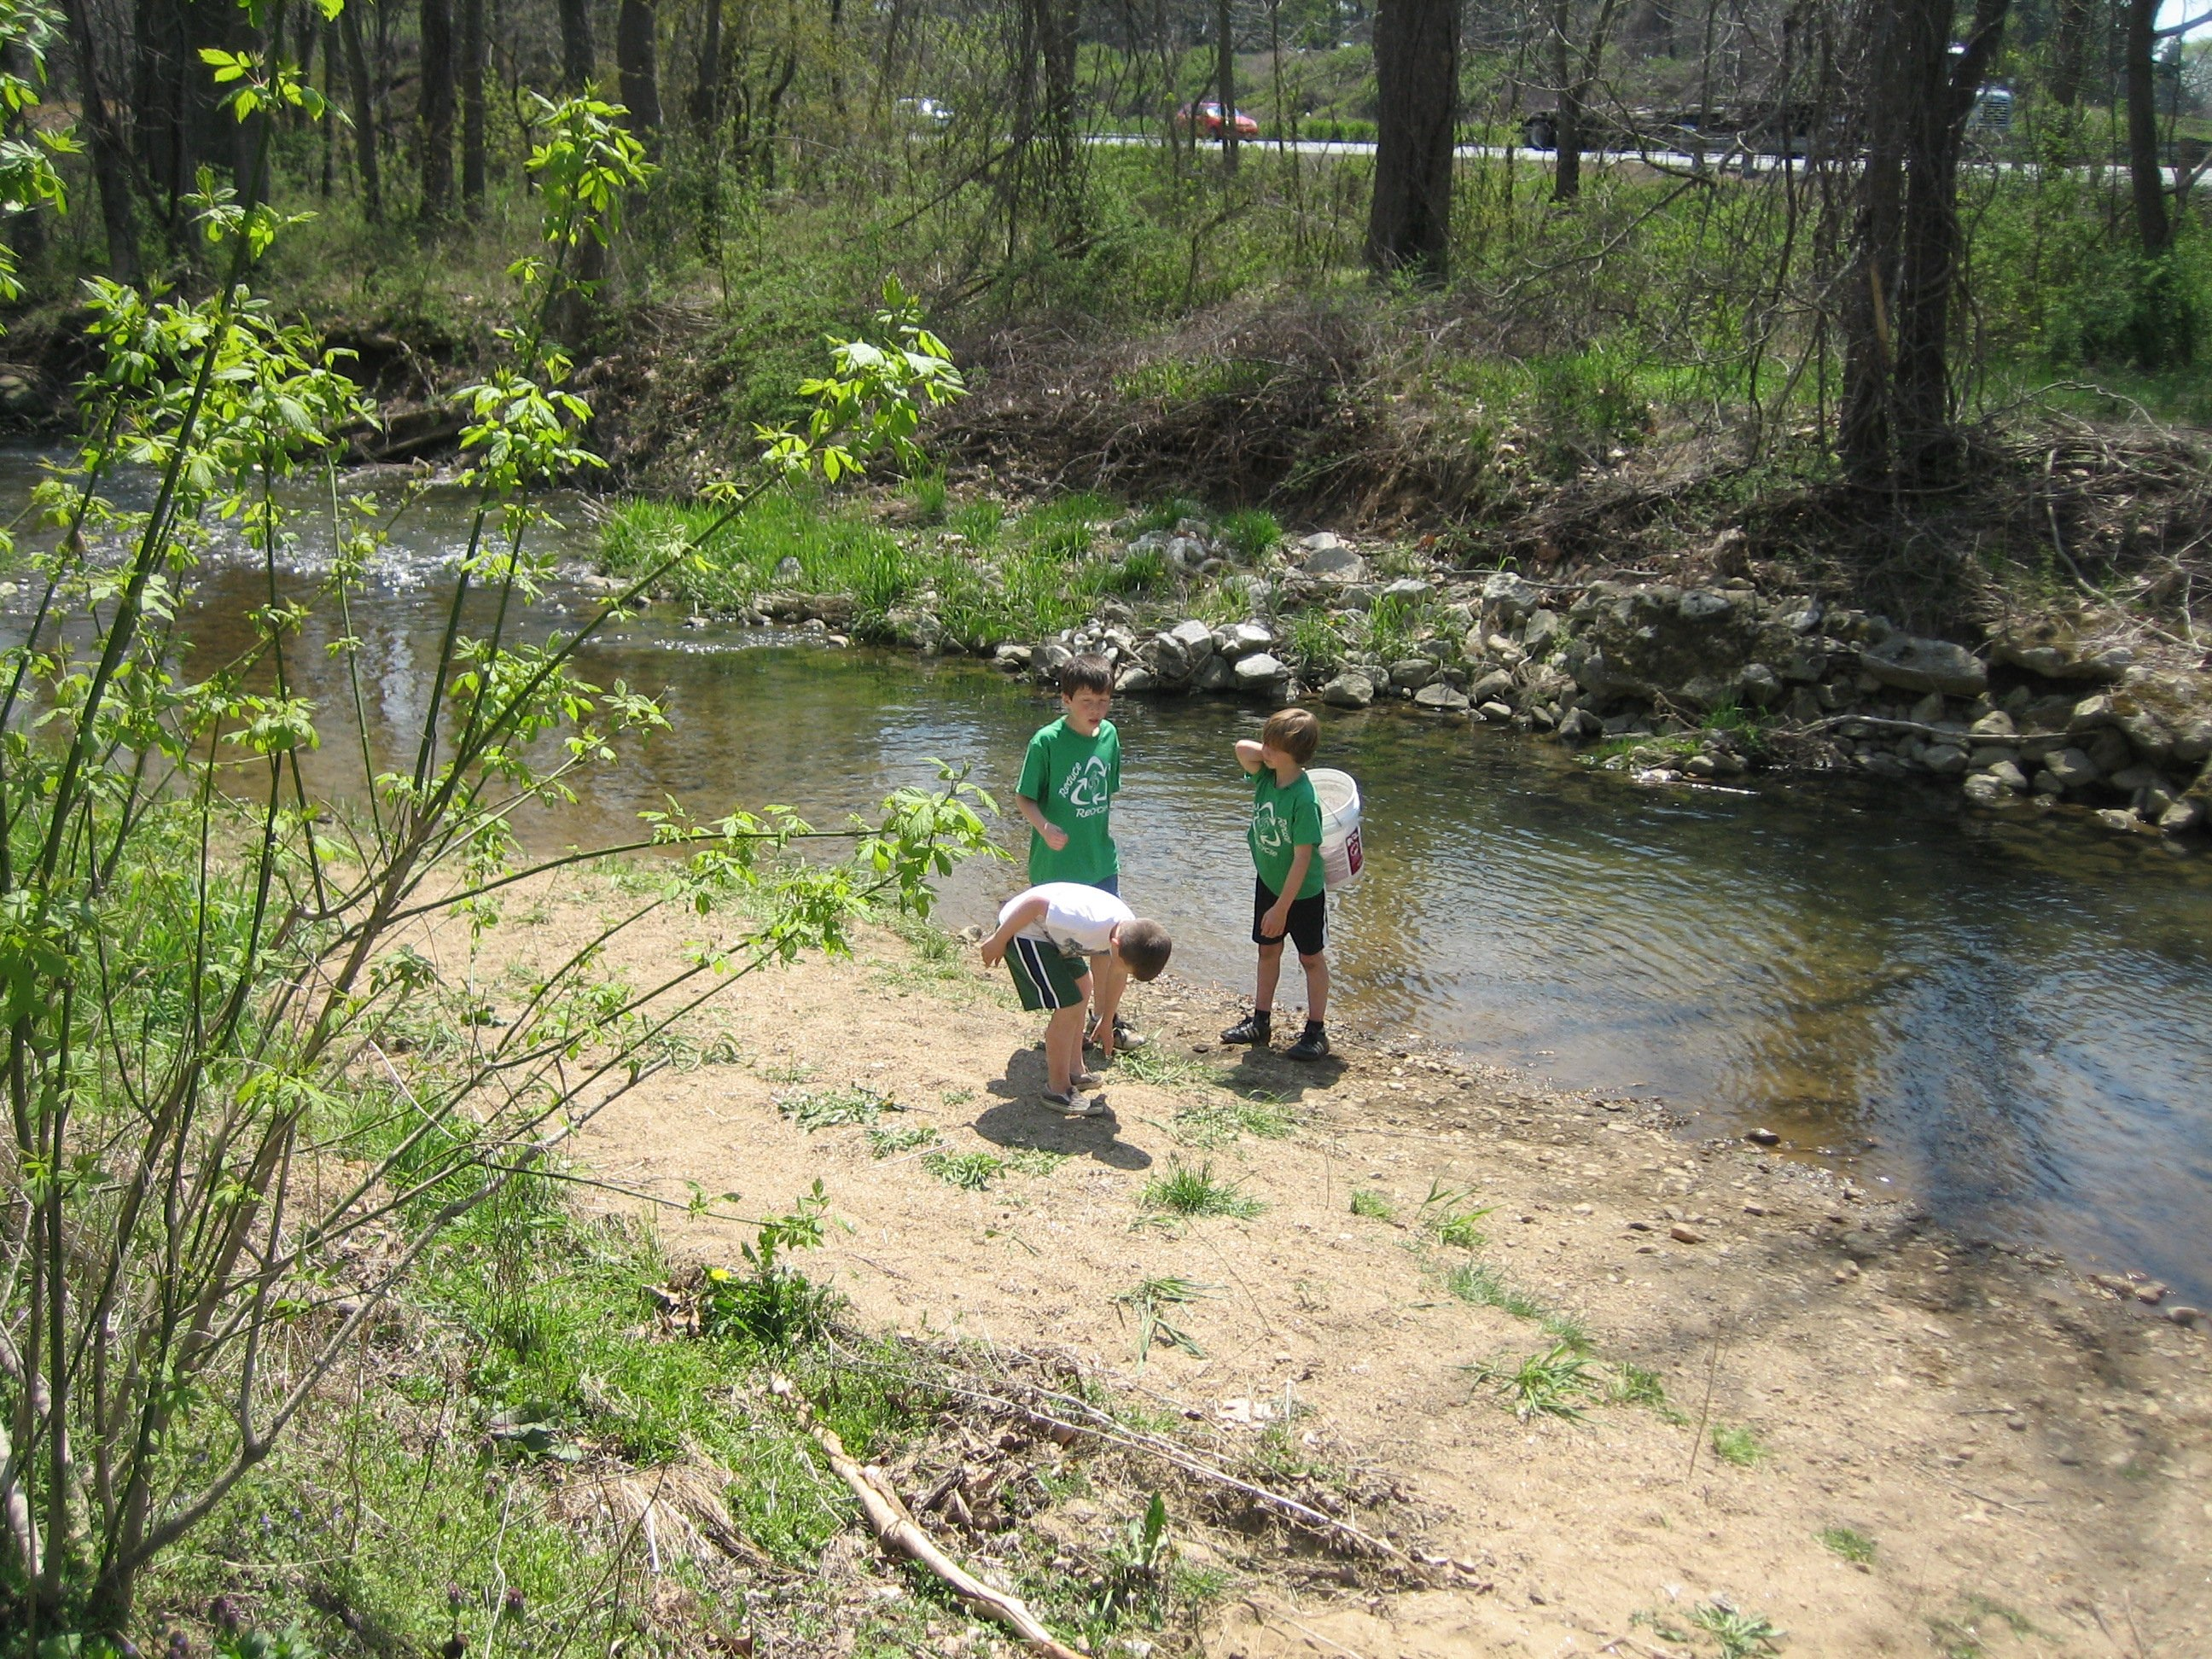 Using the stream to water the newly planted trees